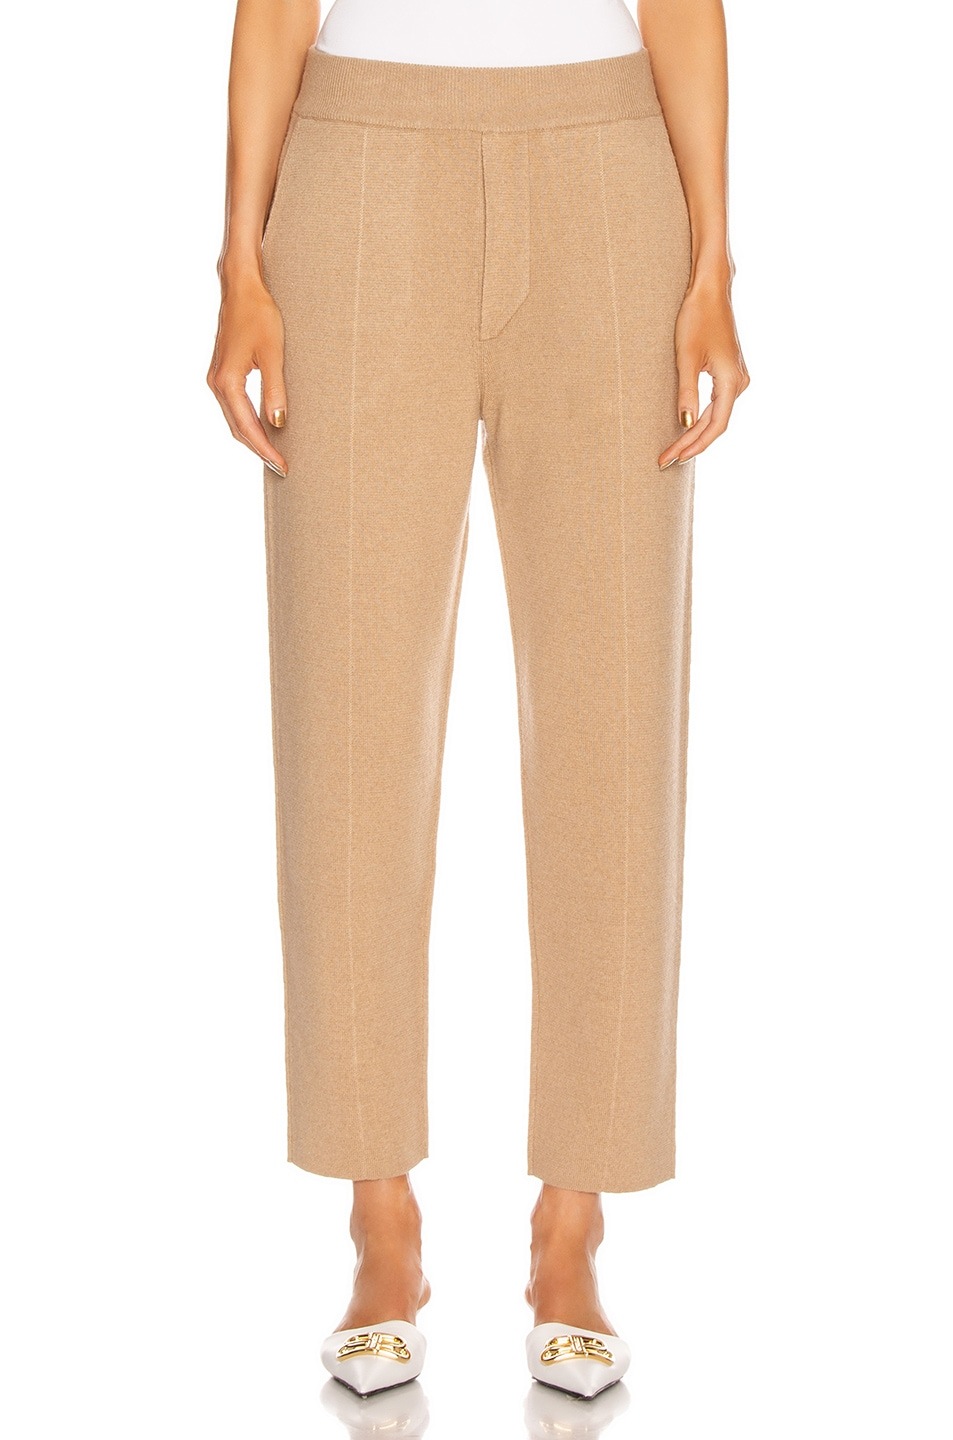 Image 1 of Haider Ackermann Knitted Trousers in Invidia Camel